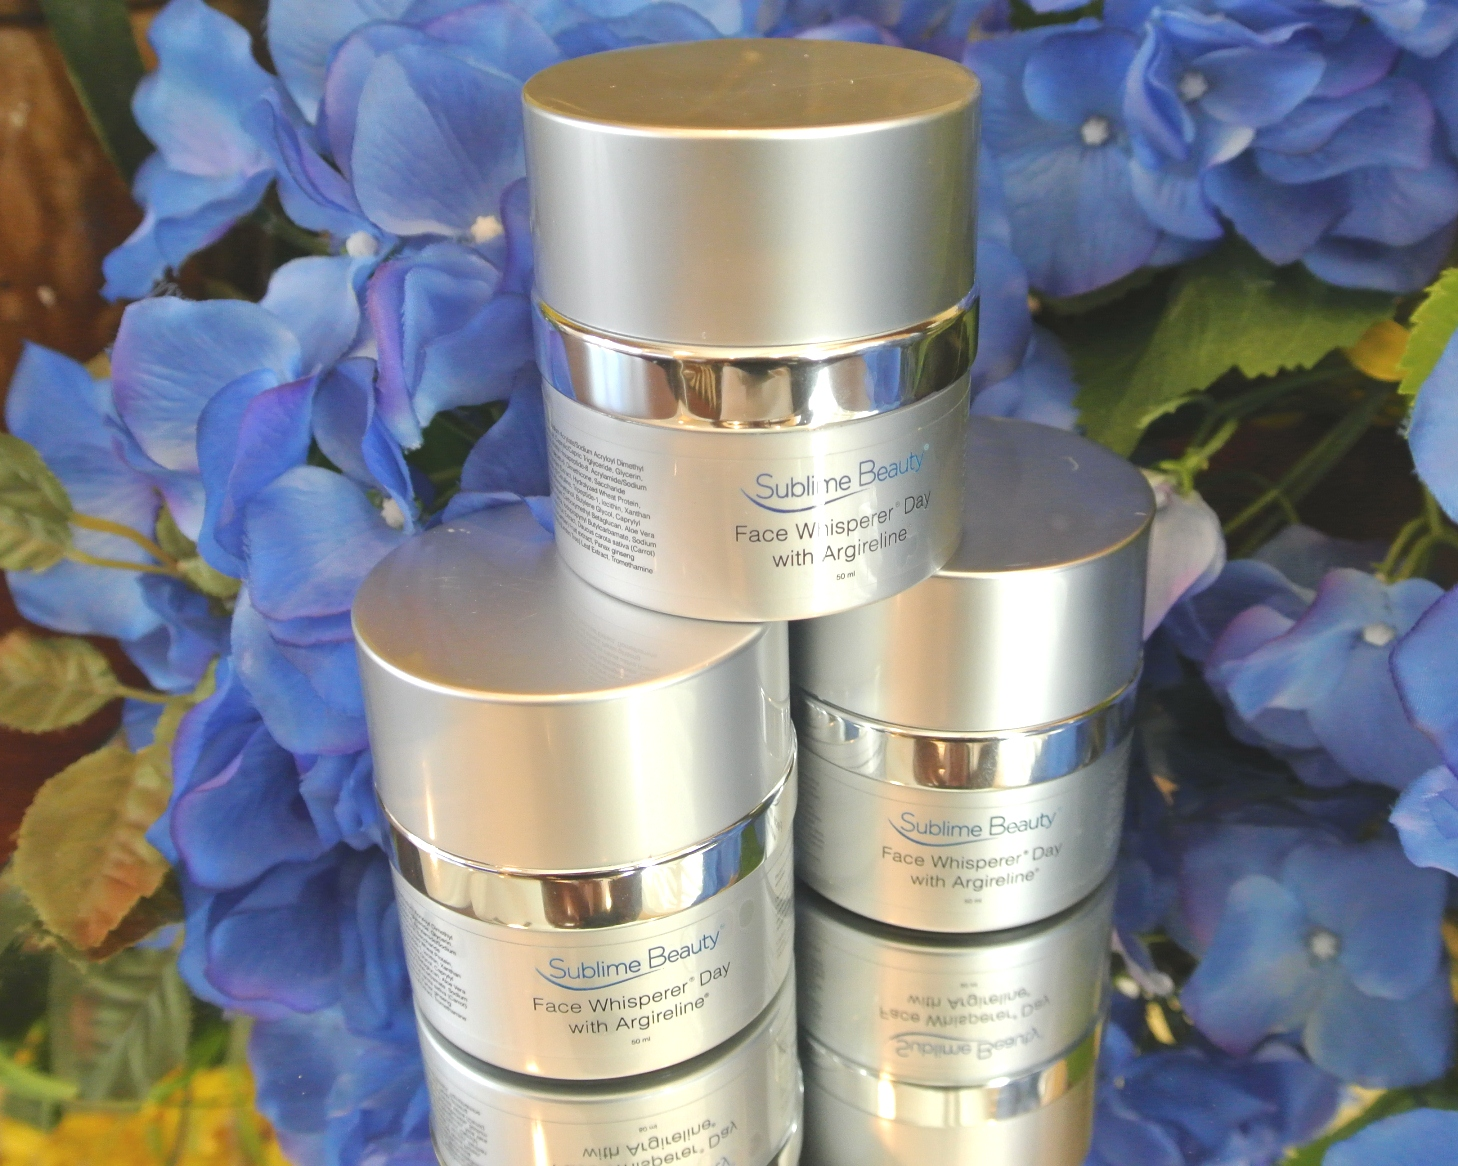 Argireline (the natural Botox) and Trylagen to Boost Collagen in